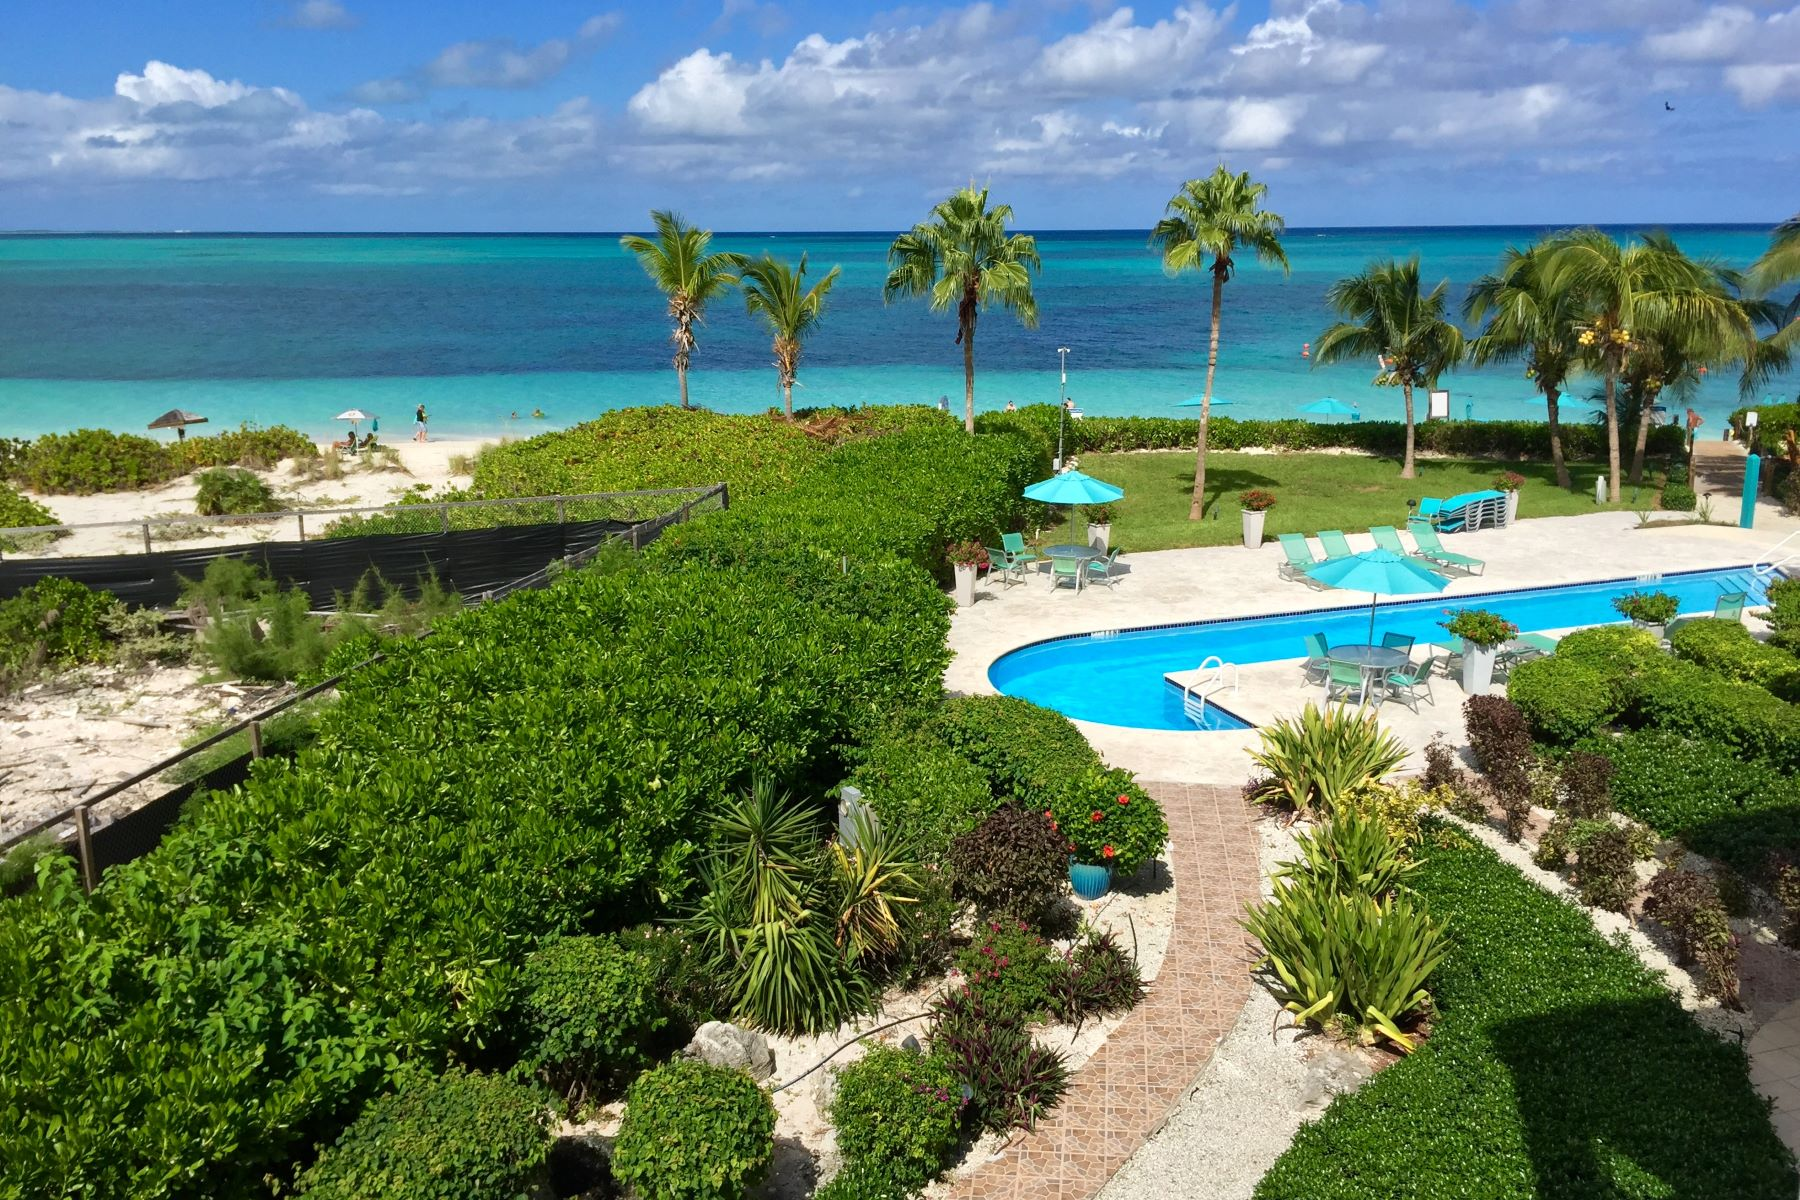 Condominium for Sale at Coral Gardens - Suite 4304 Beachfront Grace Bay, TC Turks And Caicos Islands